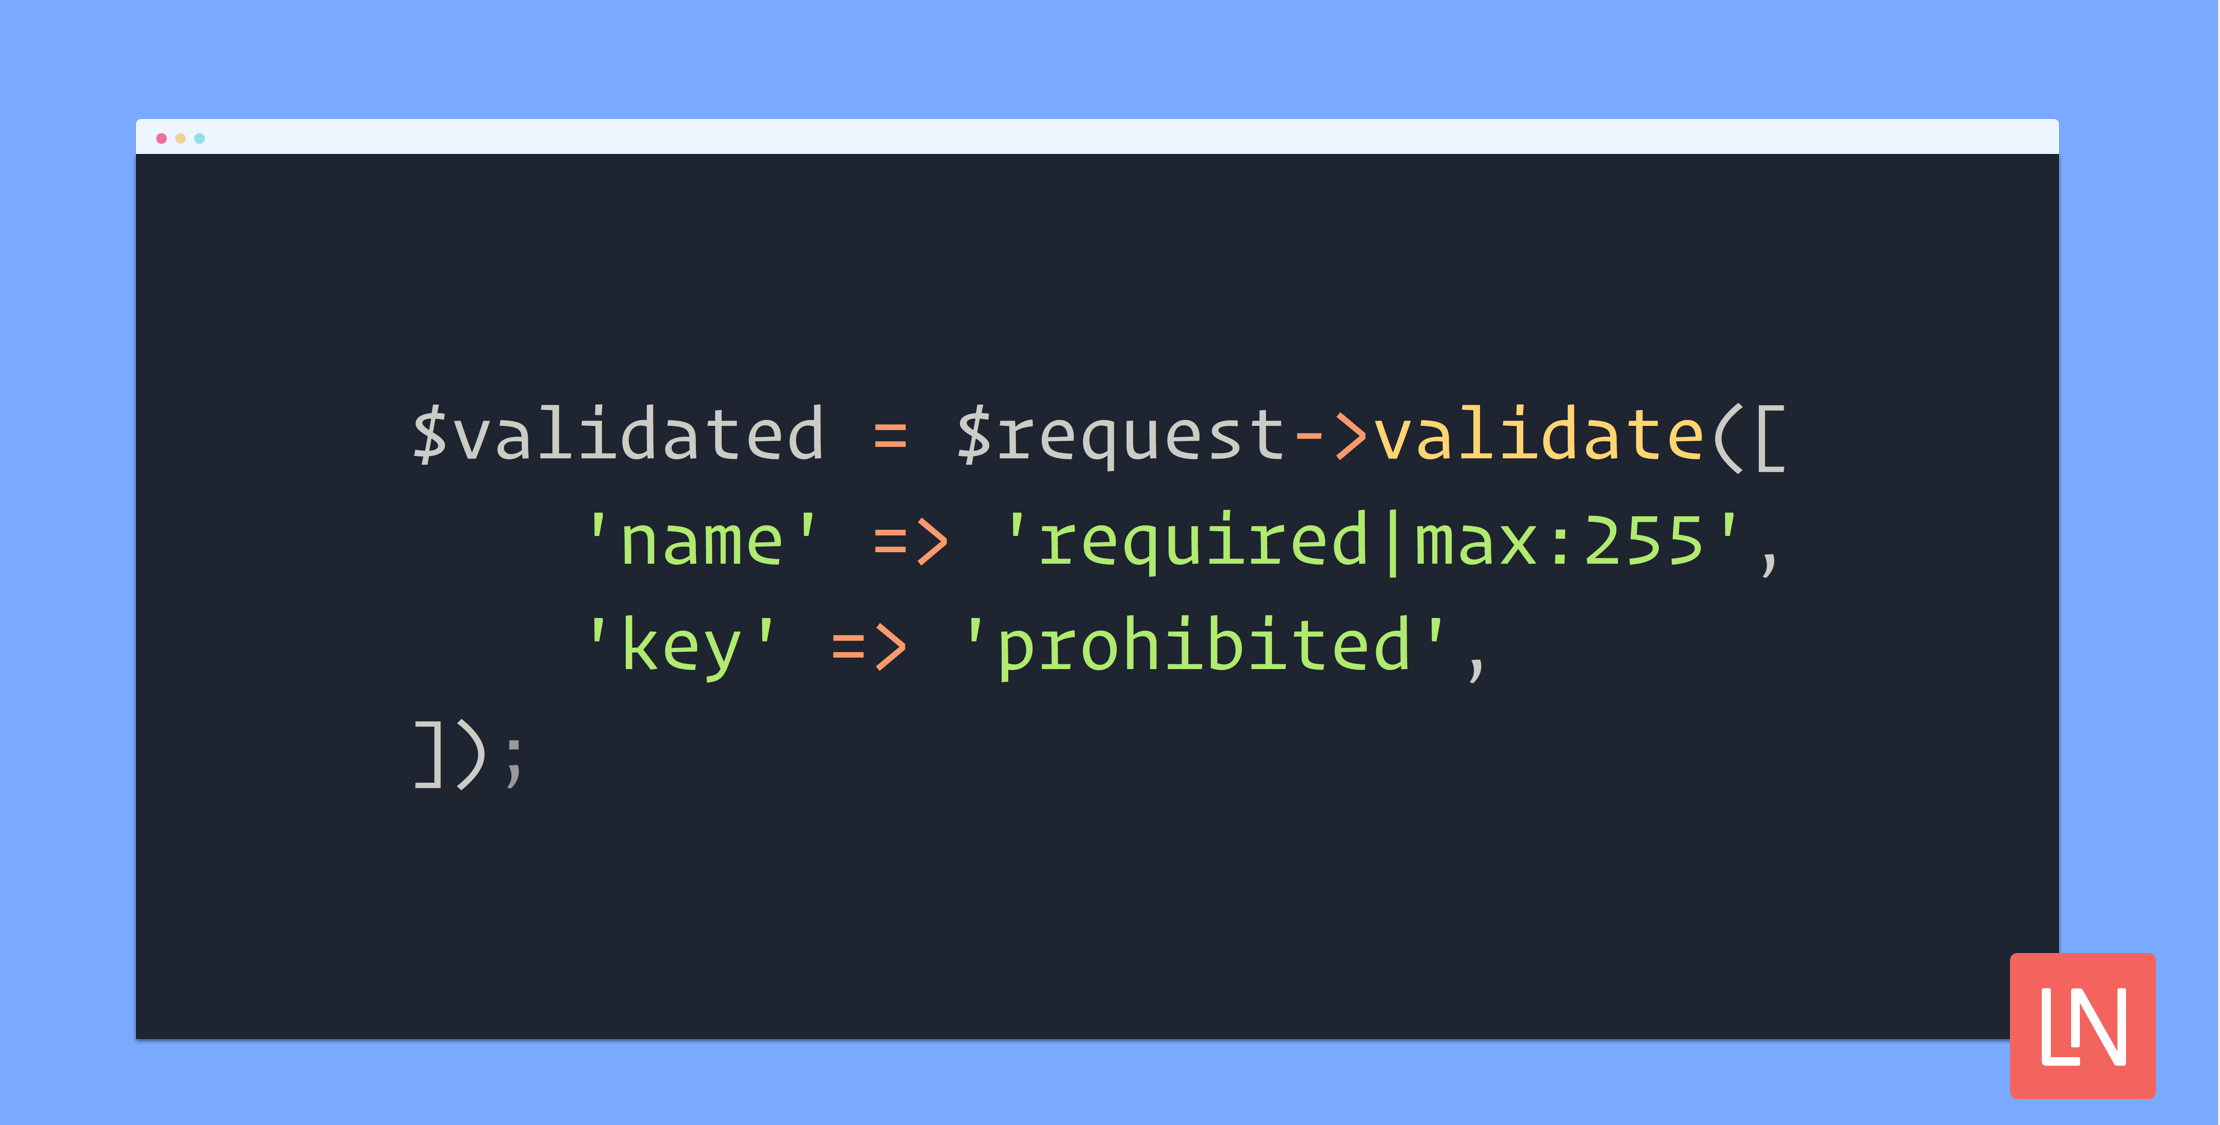 laravel-prohibited-validation-featured.png